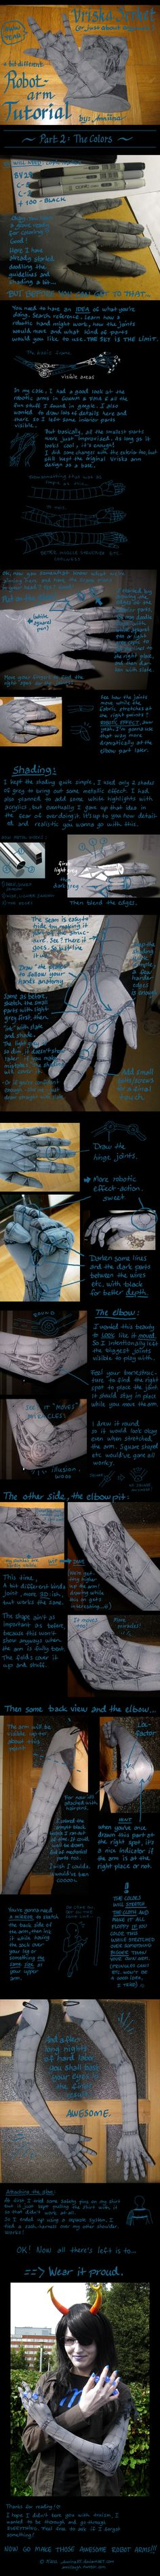 Really cool fabric sleeves painted with machinery for a robot arm.